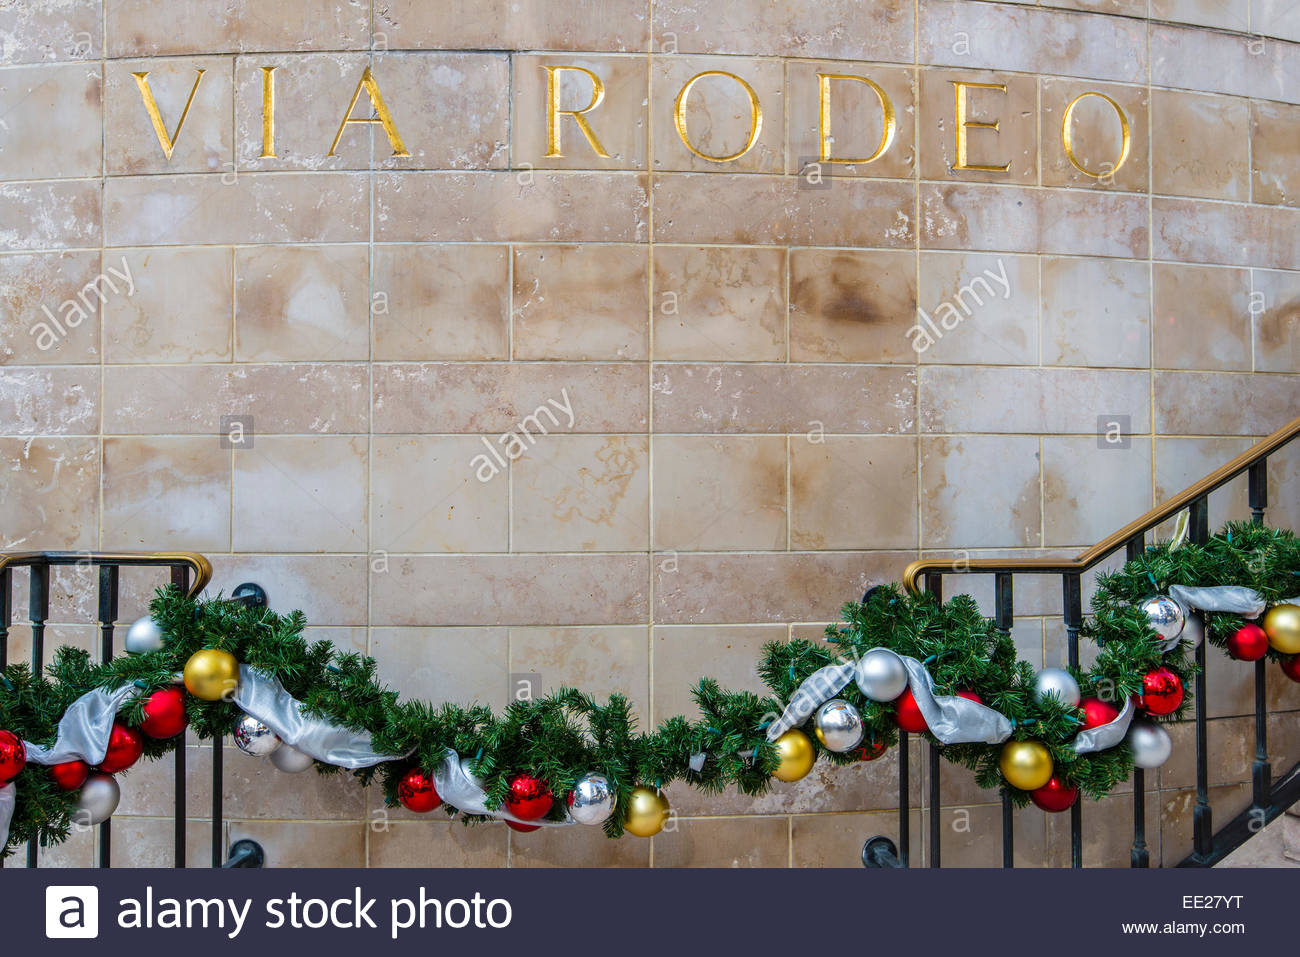 Christmas Decorations For The Wall Via Rodeo Wall Sign With Christmas Decorations In Rodeo Drive